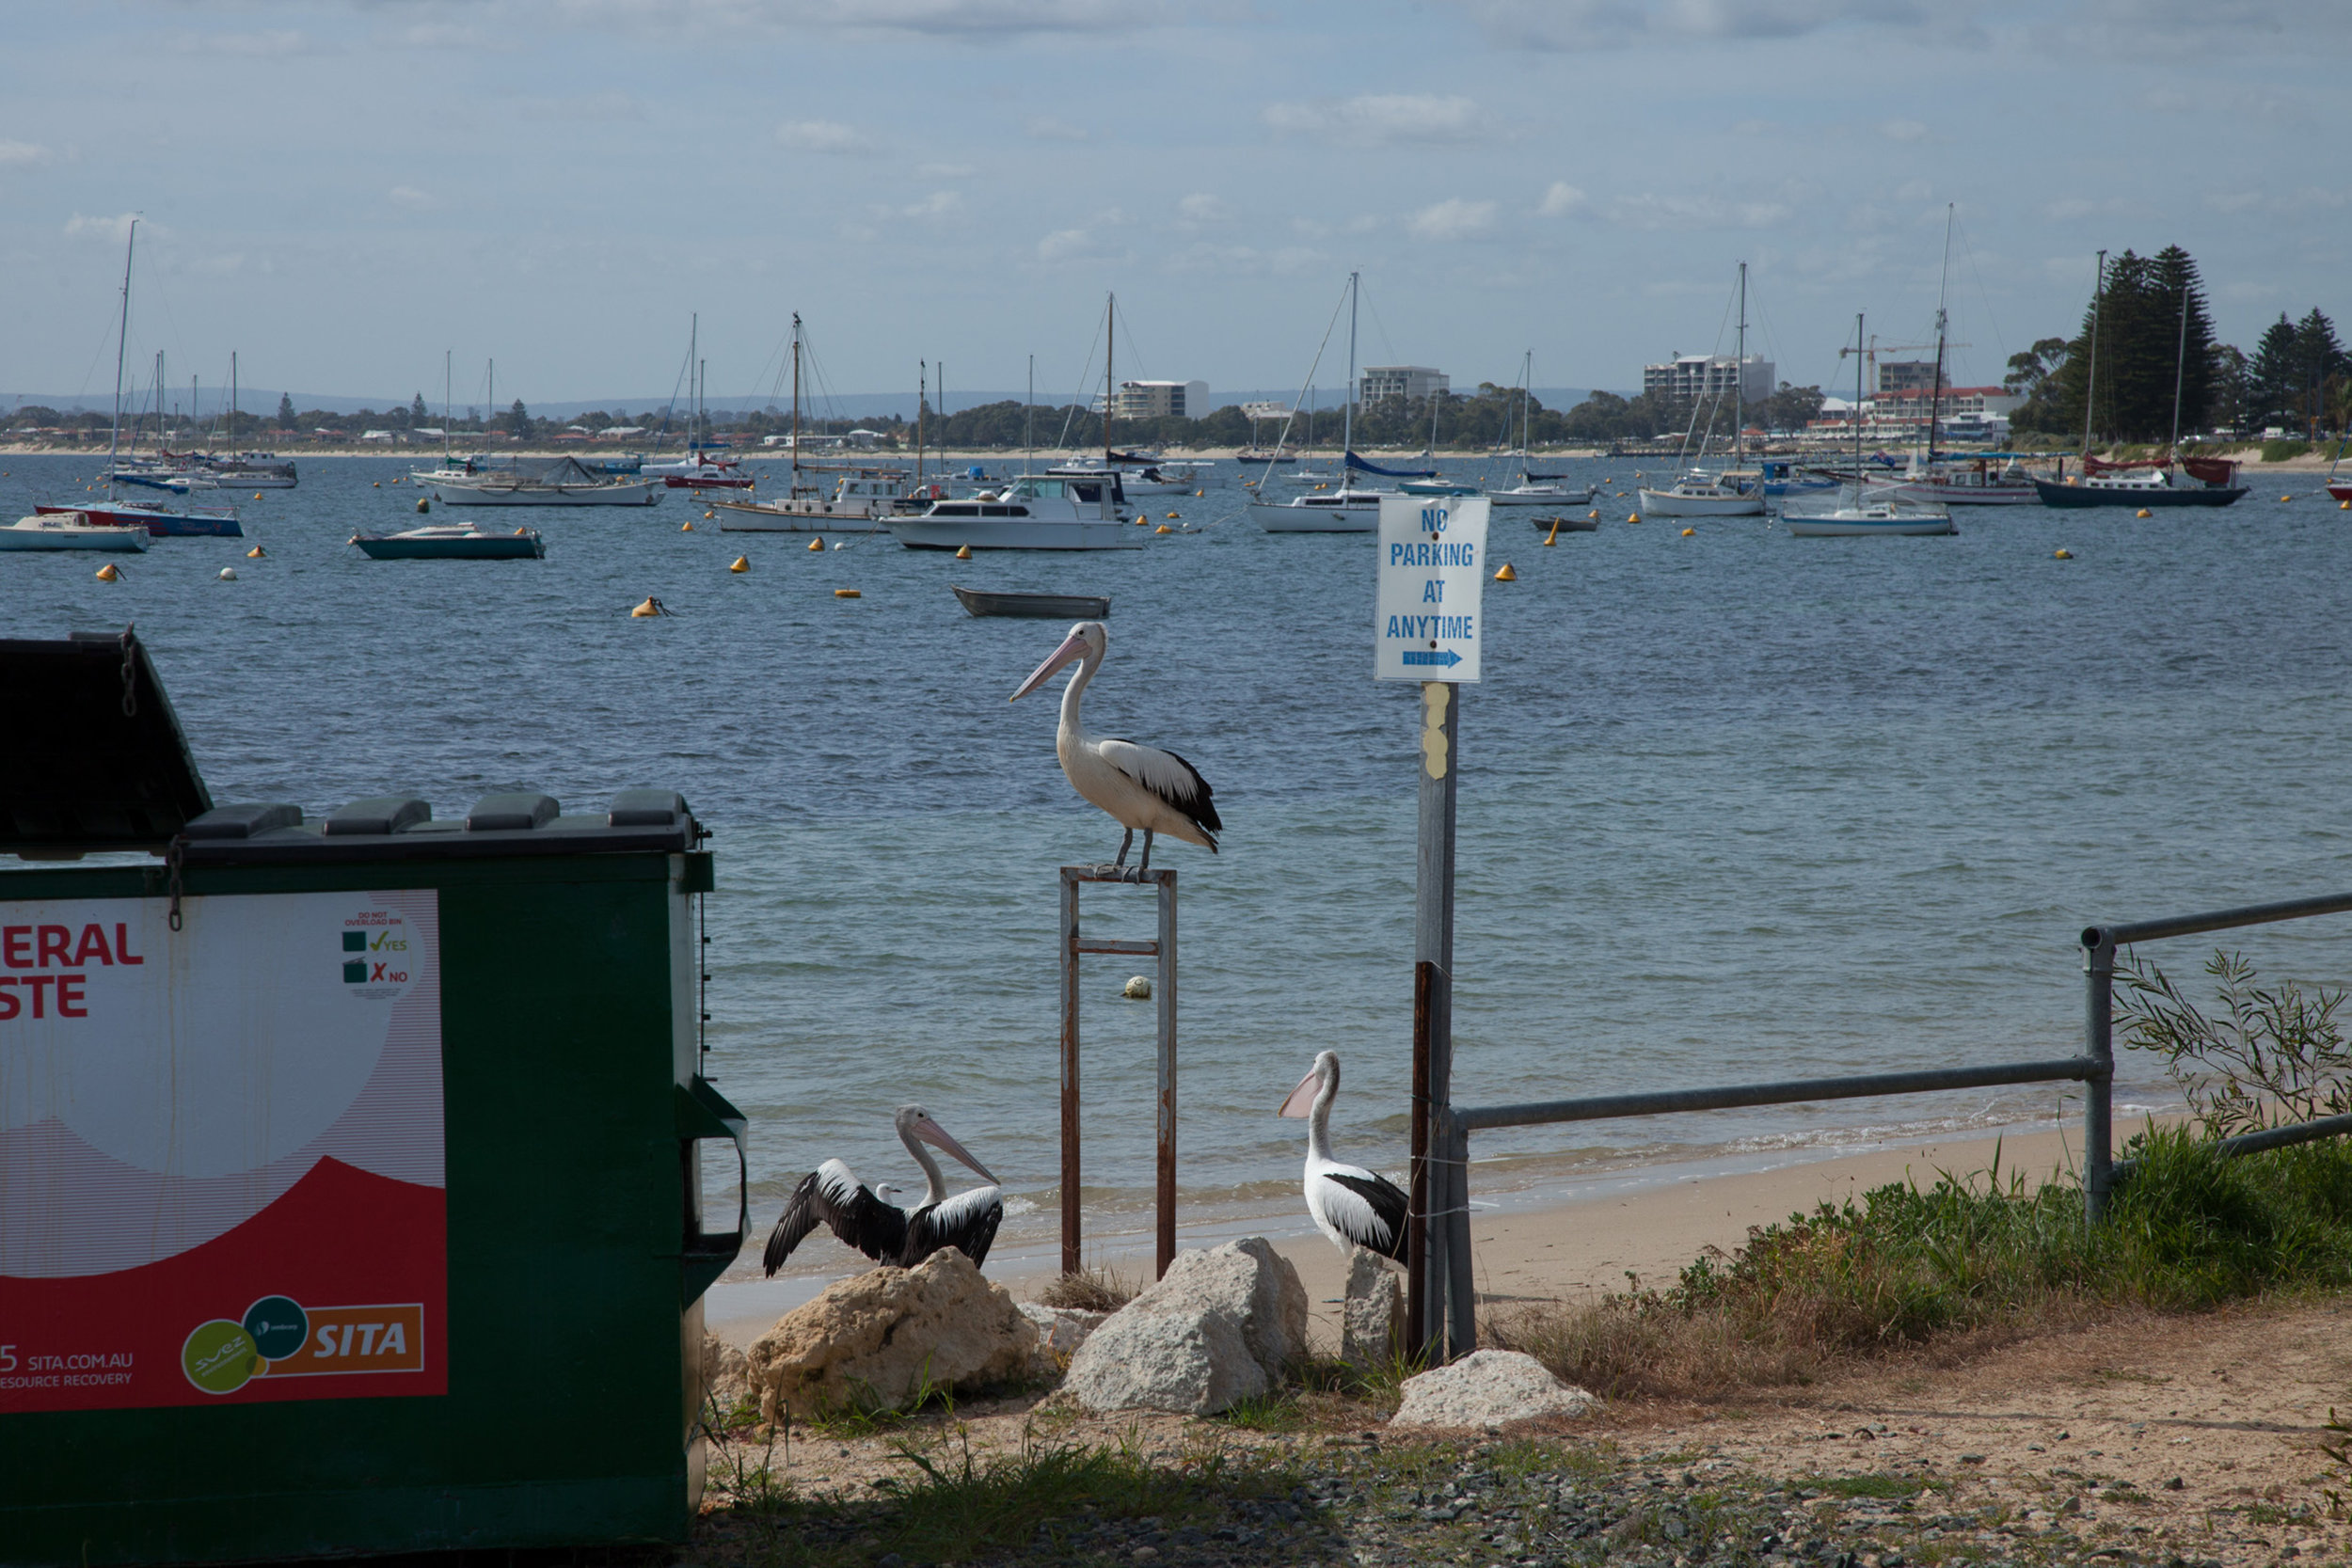 Plate 23: Some of the many pelicans near the boat club.